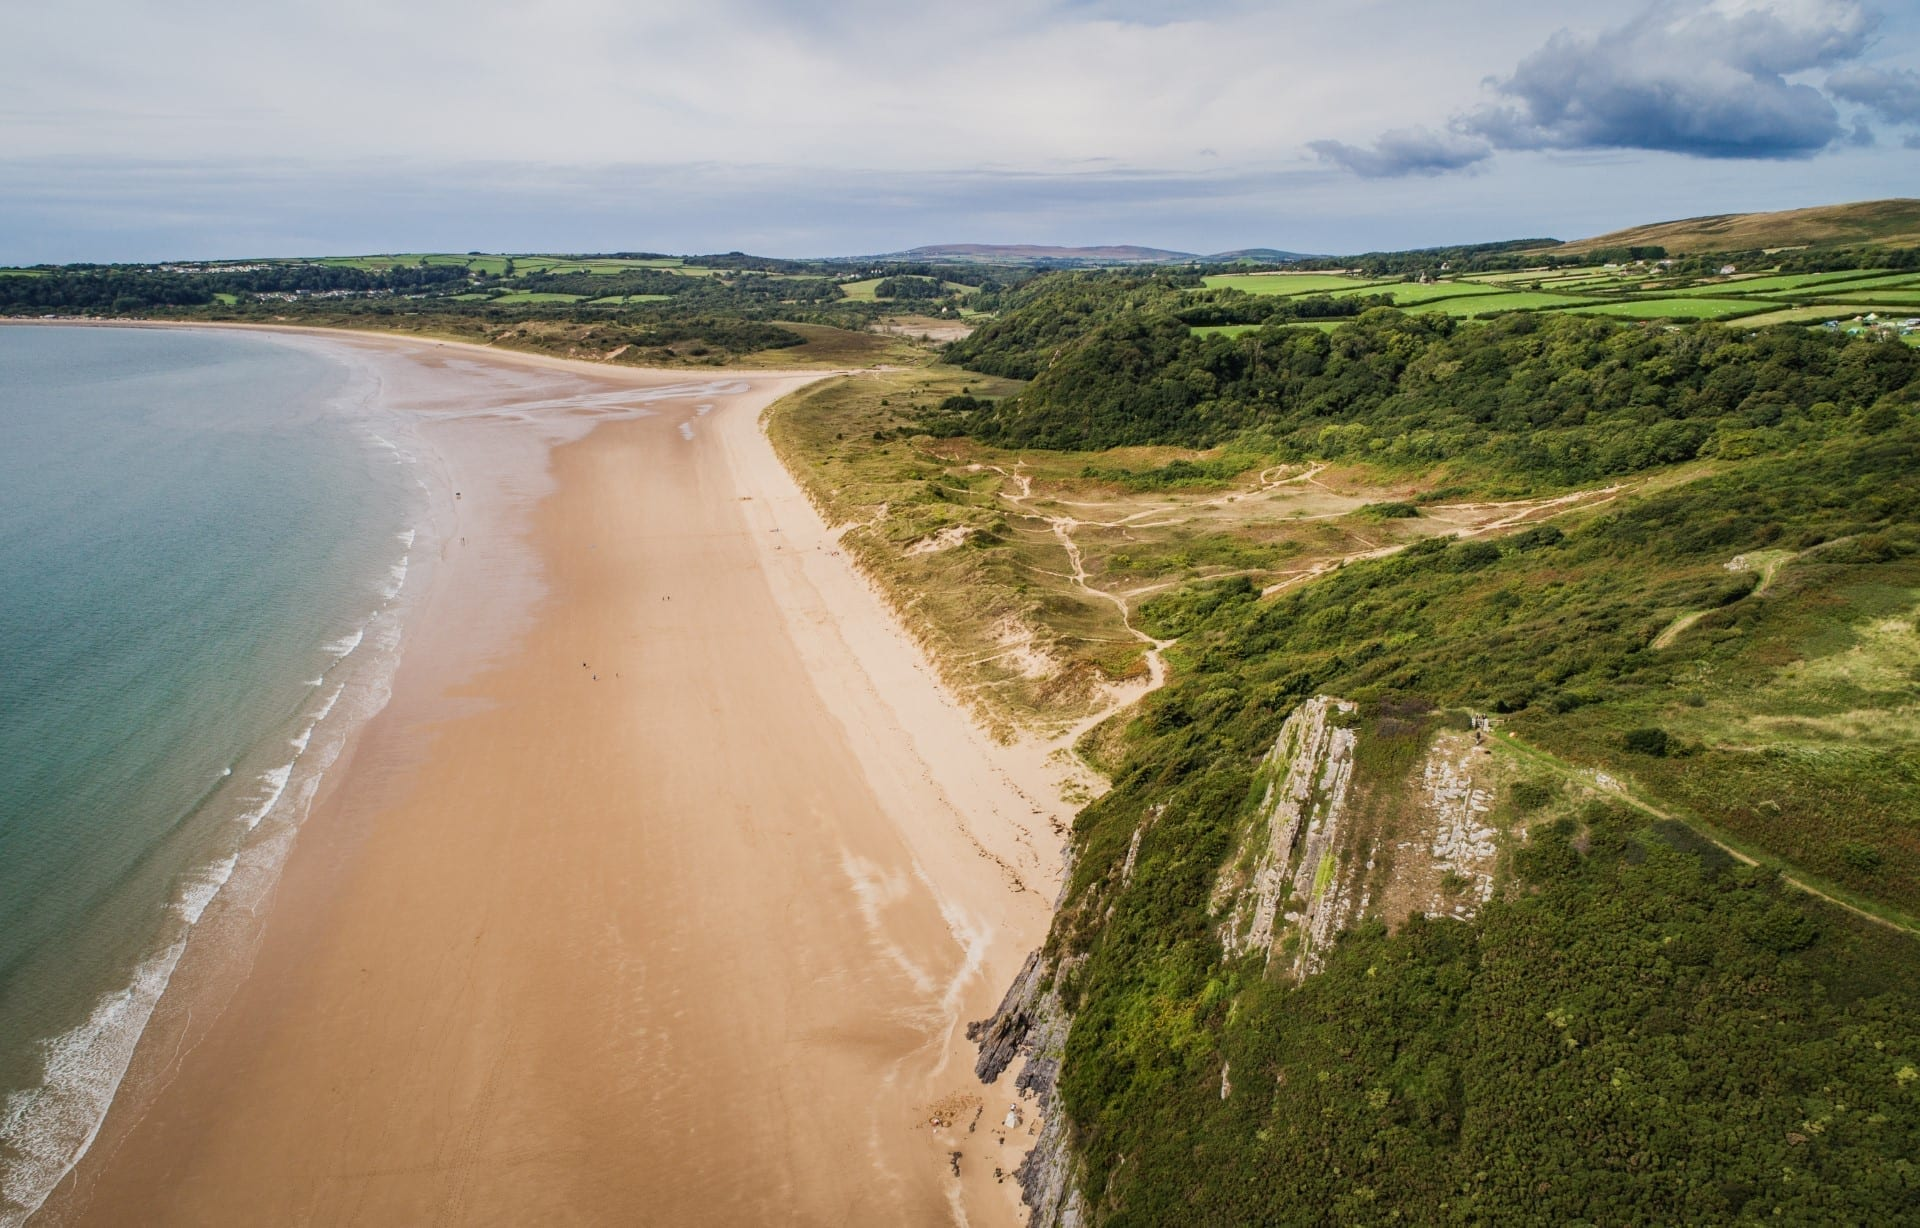 Amazing Campsites in Wales Near Beaches - Cliffs Bank, Gower, Wales